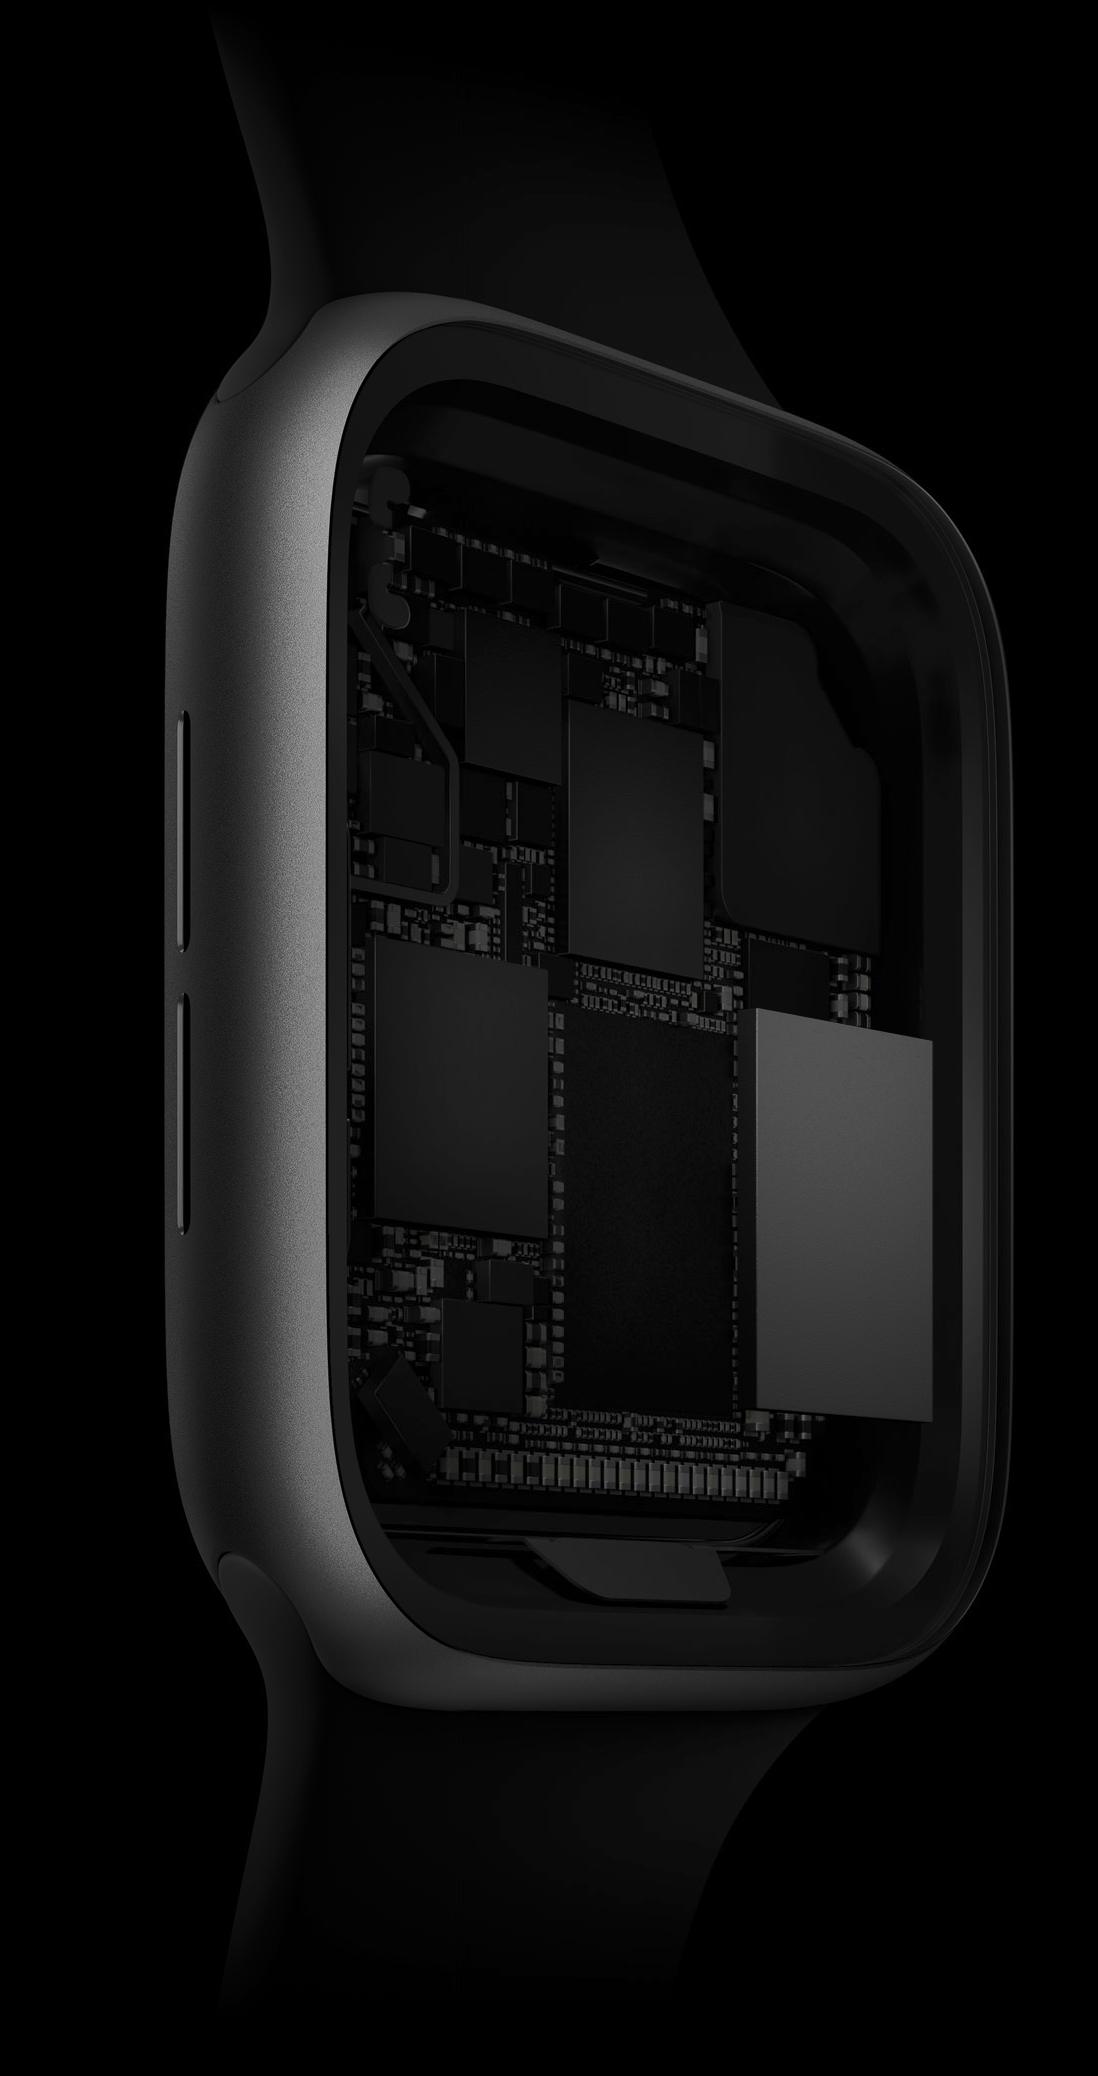 Procesador S4 en el interior del Apple Watch series 4